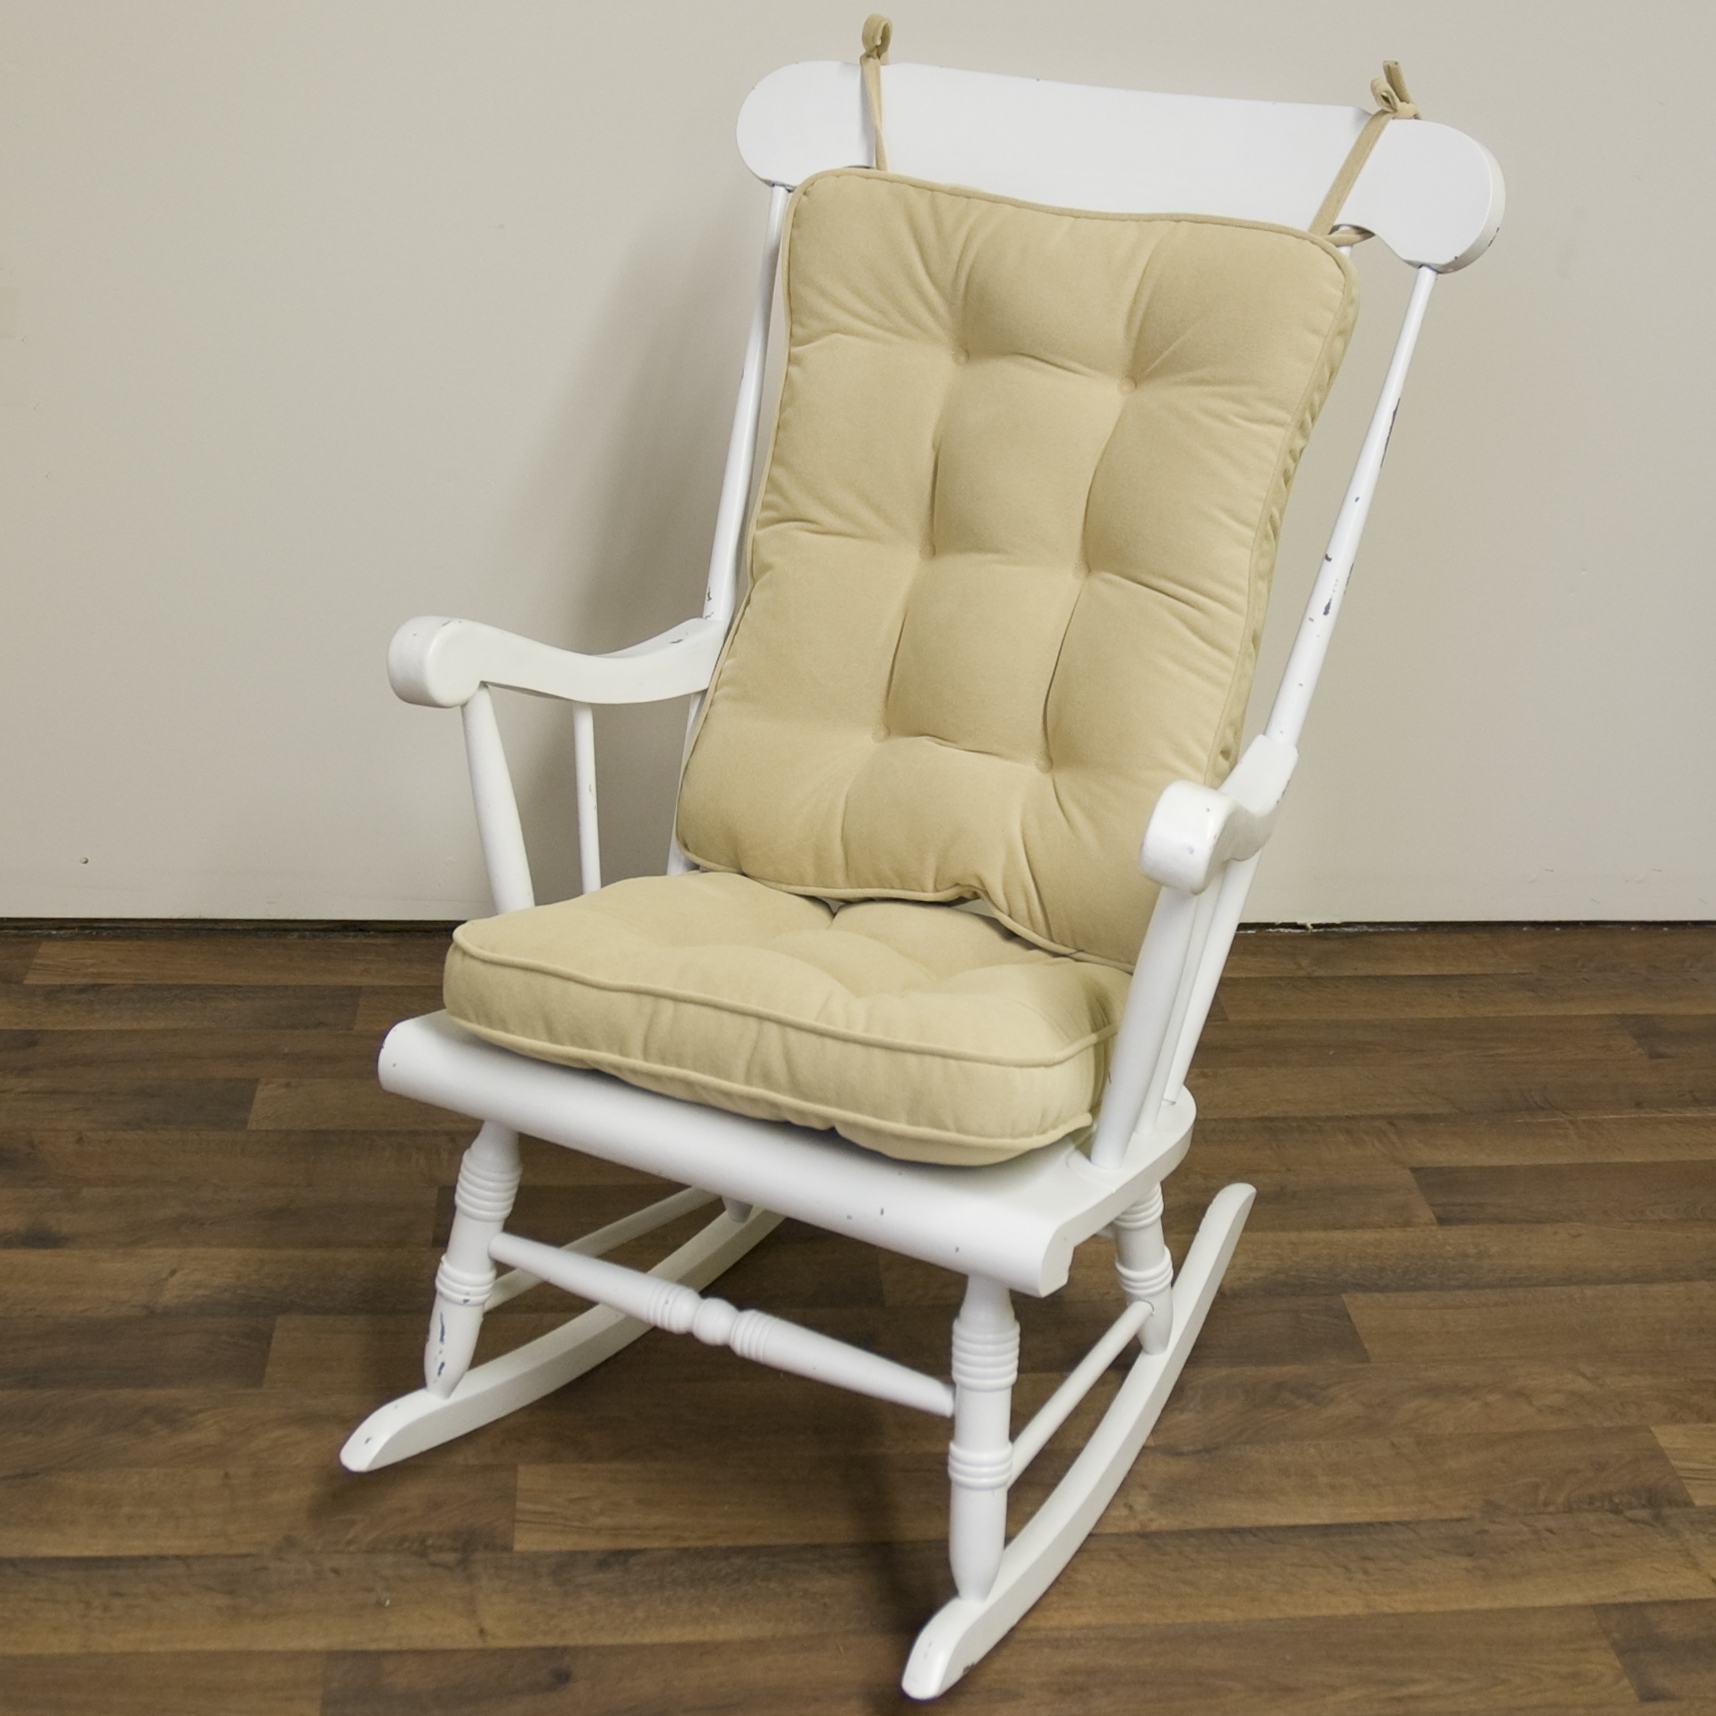 Rocking Chair From Ikea – Kevinjohnsonformayor Within Rocking Chairs At Ikea (#12 of 15)